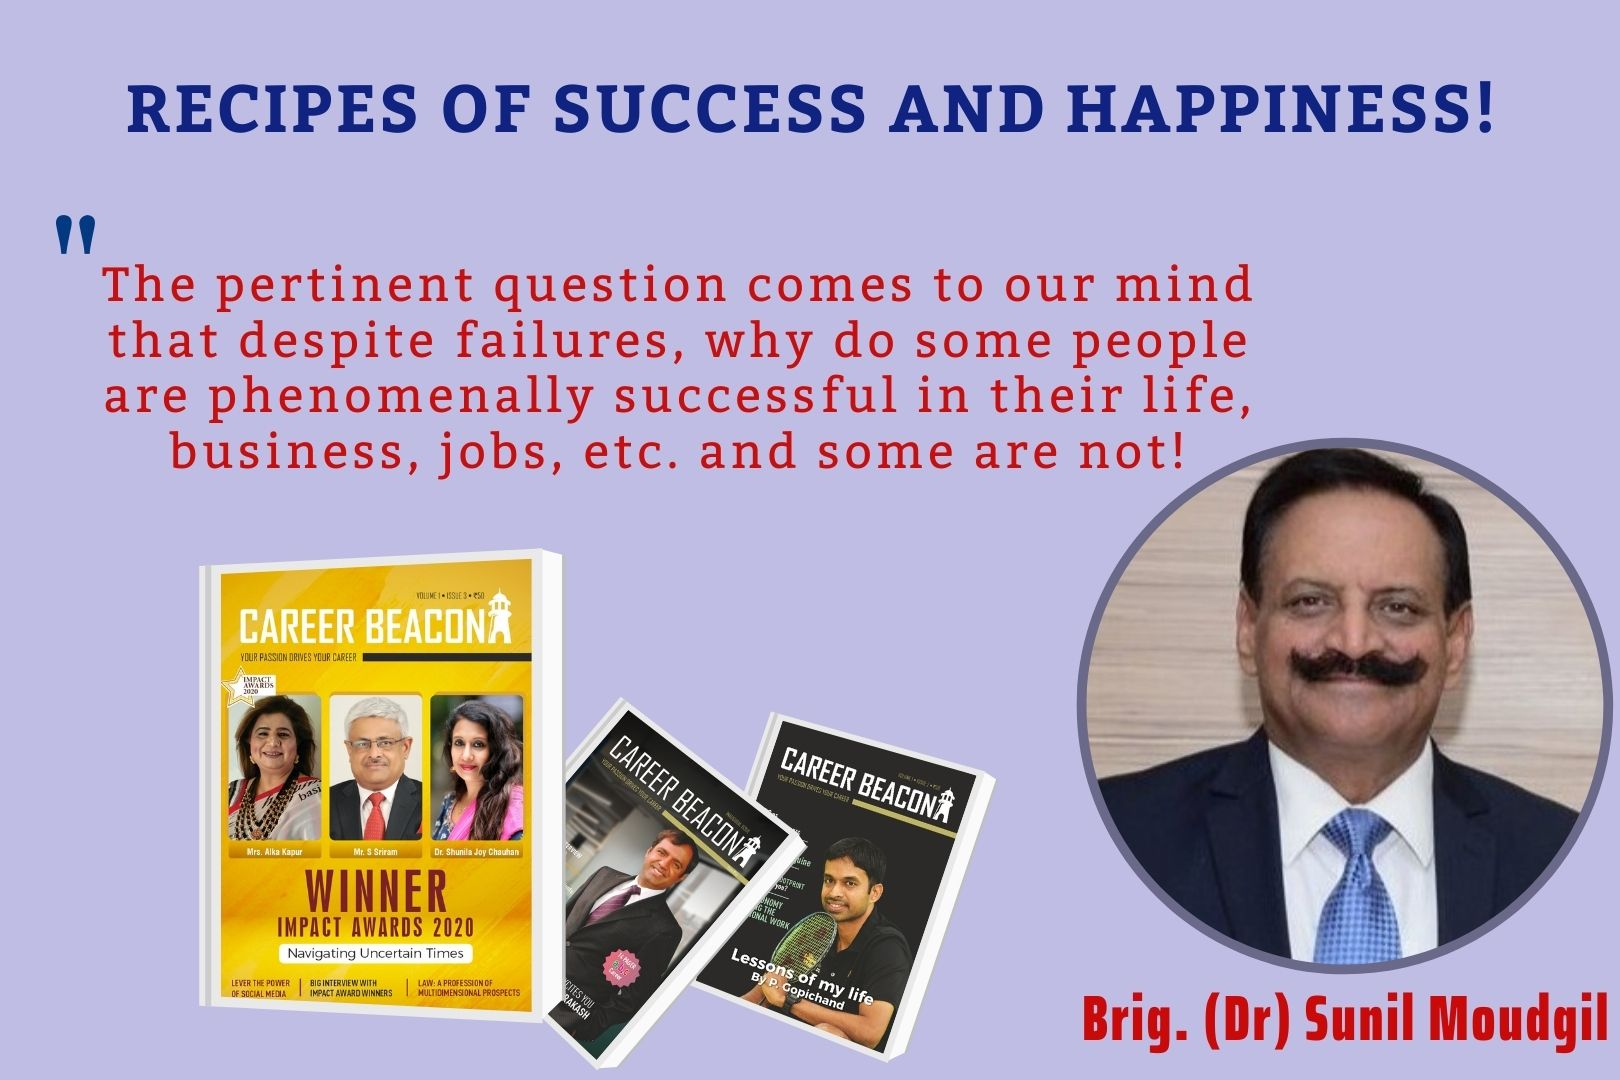 RECIPES OF SUCCESS AND HAPPINESS!